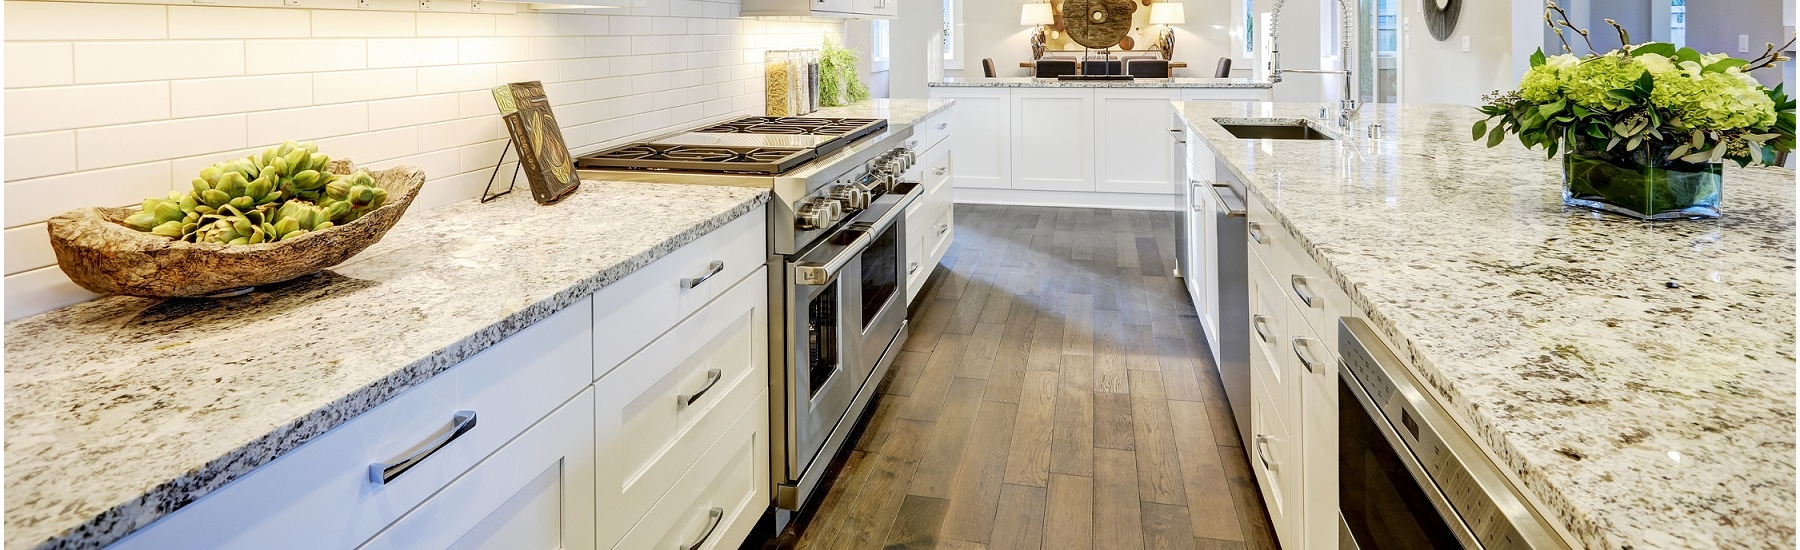 Luxurious white kitchen with granite counter tops